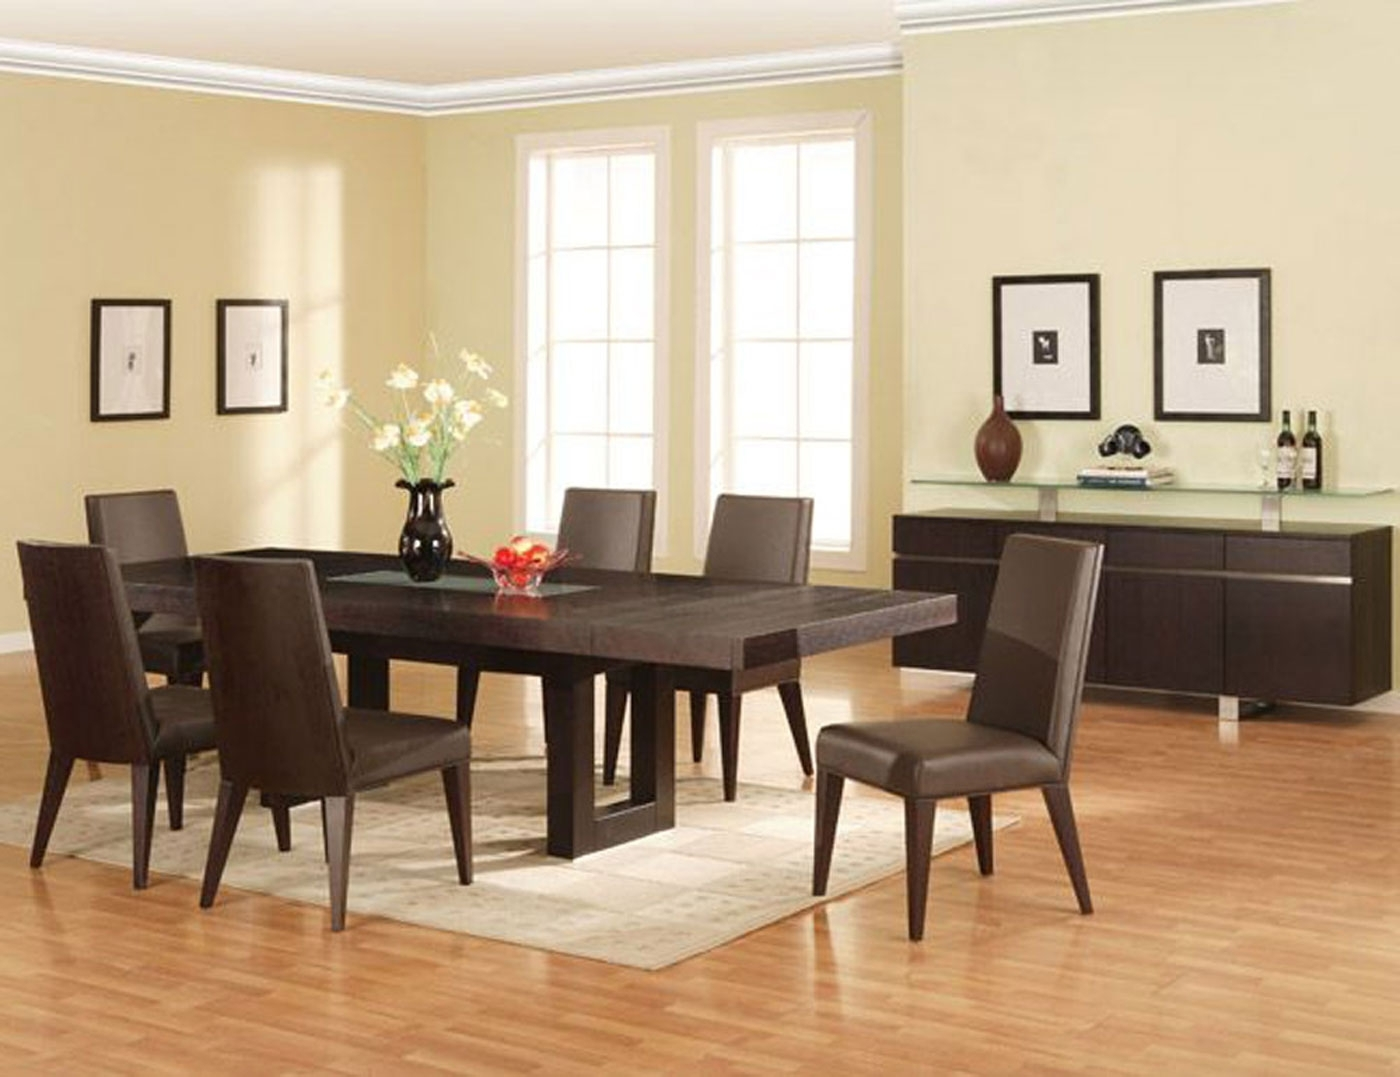 Popular Asian Dining Tables Inside Dining Tables: Astounding 6 Person Dining Table 6 Person Round (View 2 of 25)